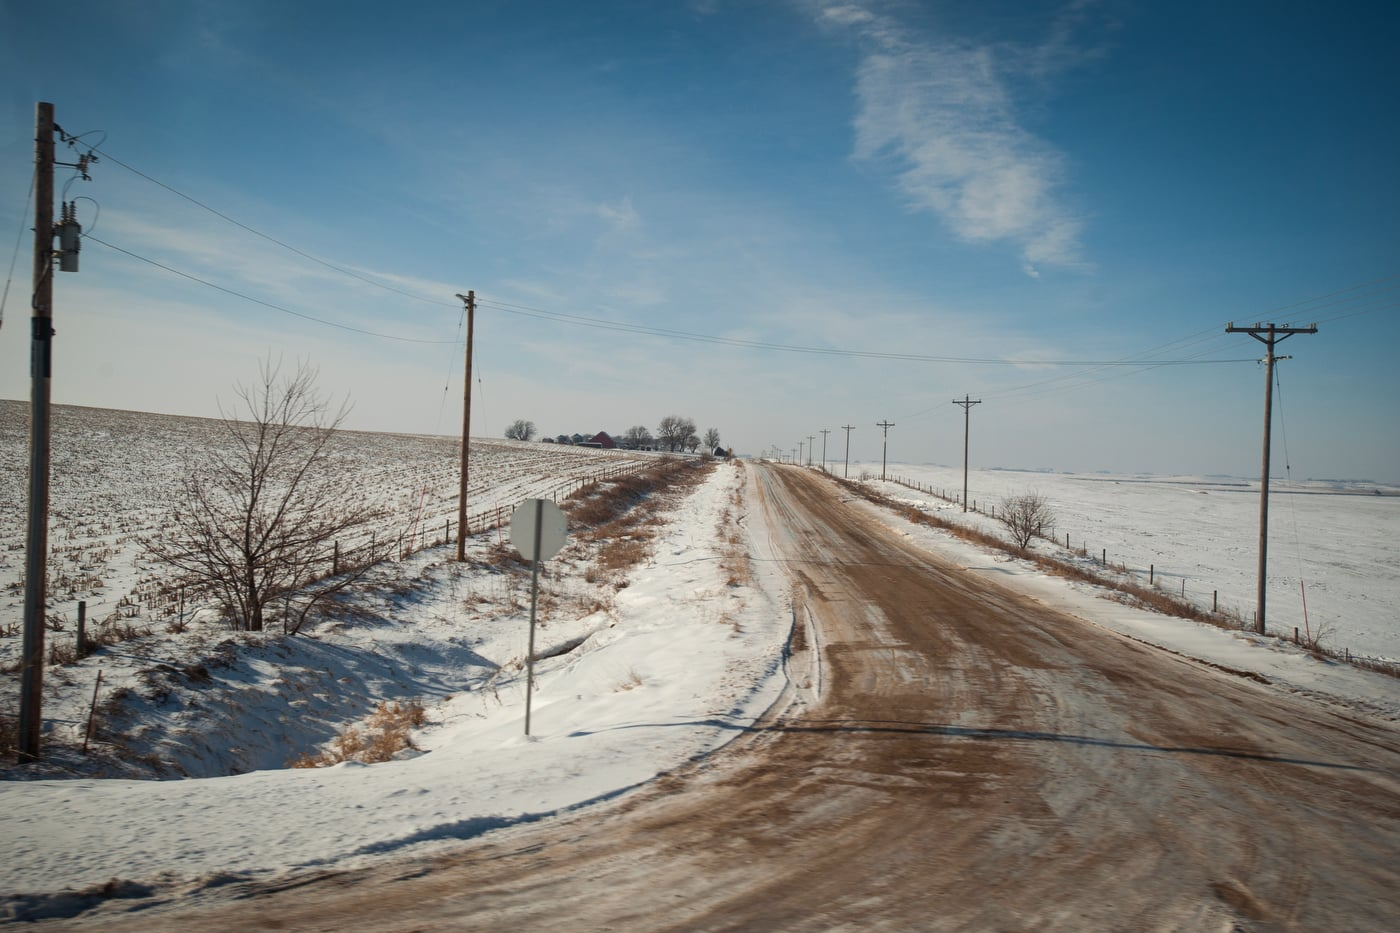 The road between Onawa and Cherokee towards Danny's Sports Spot in Cherokee, Iowa where Ted Cruz will hold his second event of the day January 5, 2016.